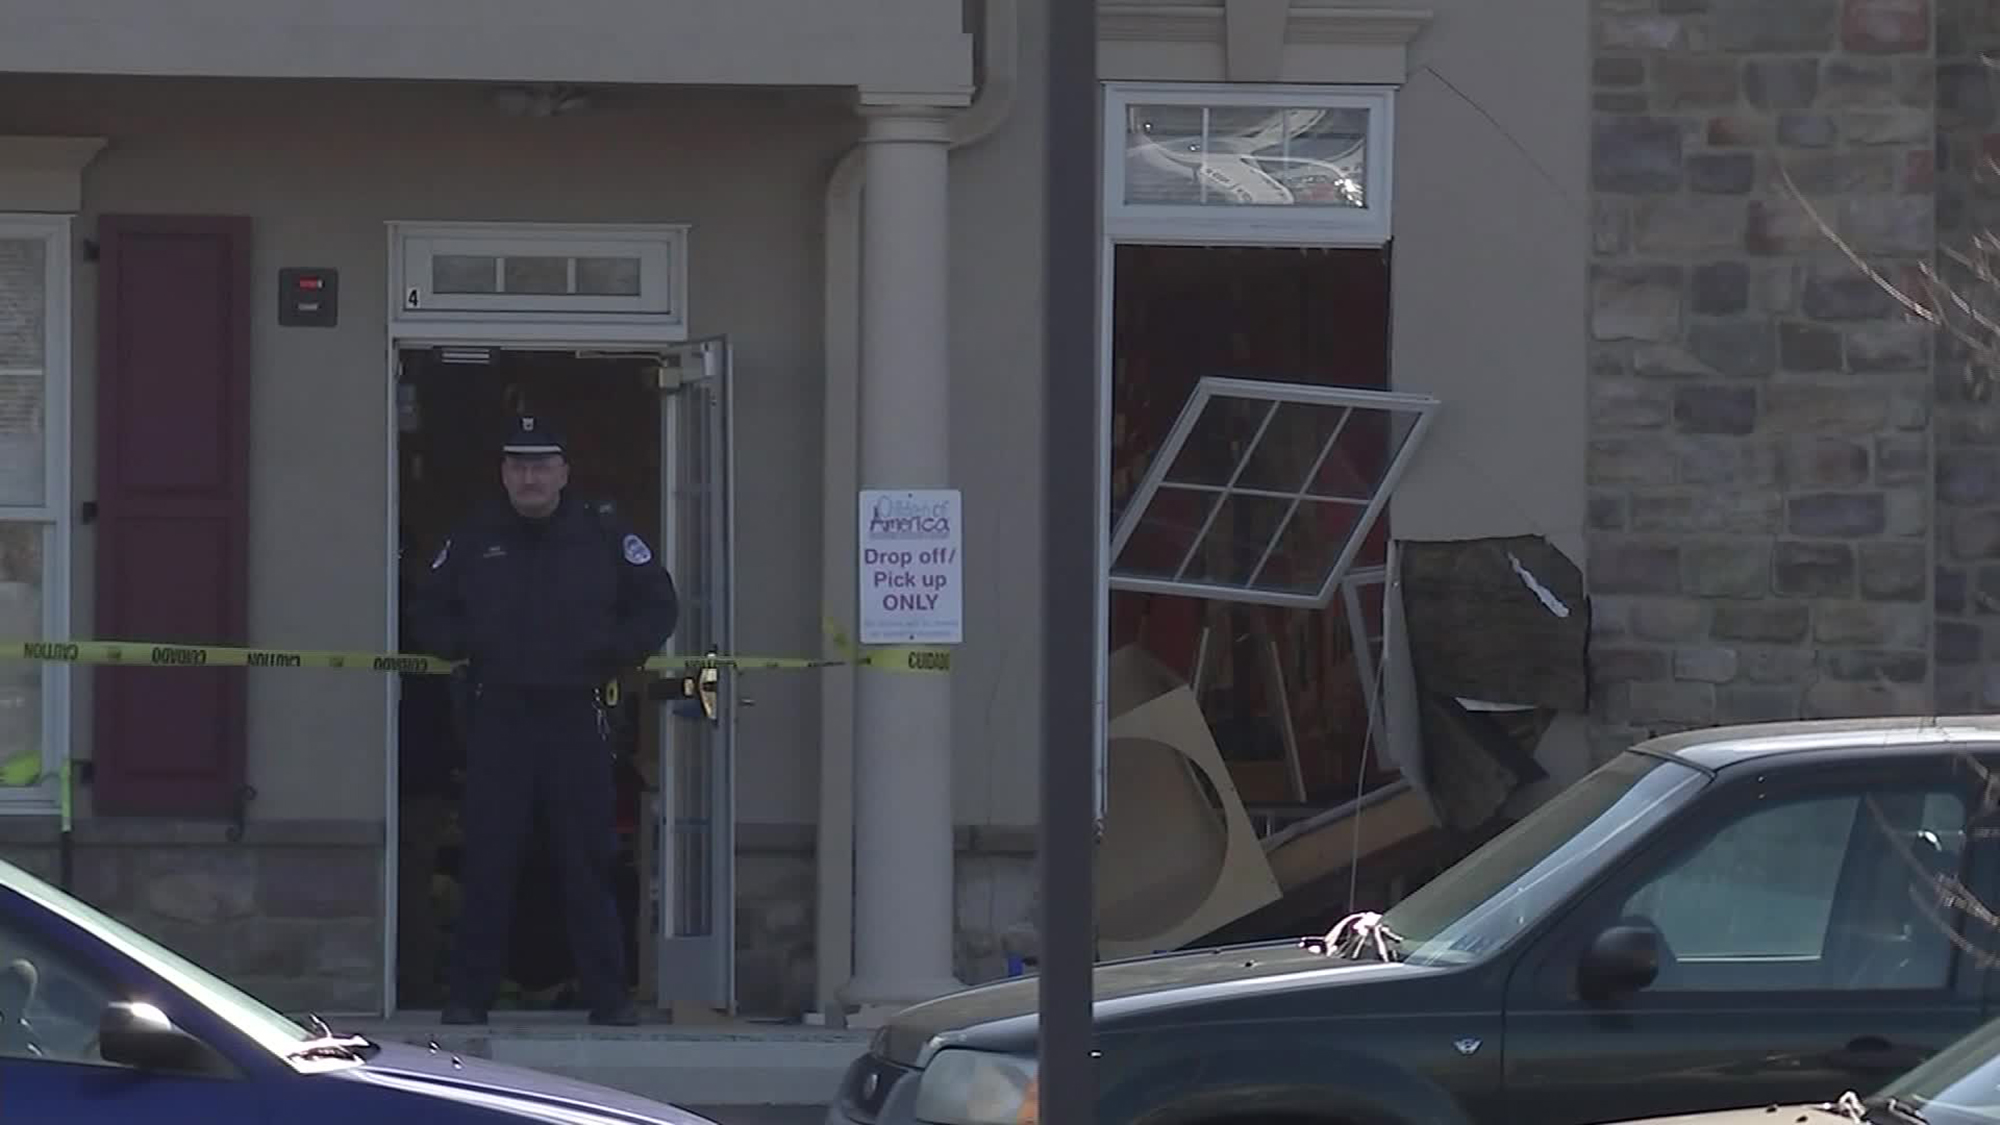 4 kids, from 3 to 4 years old, were taken to a hospital after a car crashed into a Pennsylvania day care center